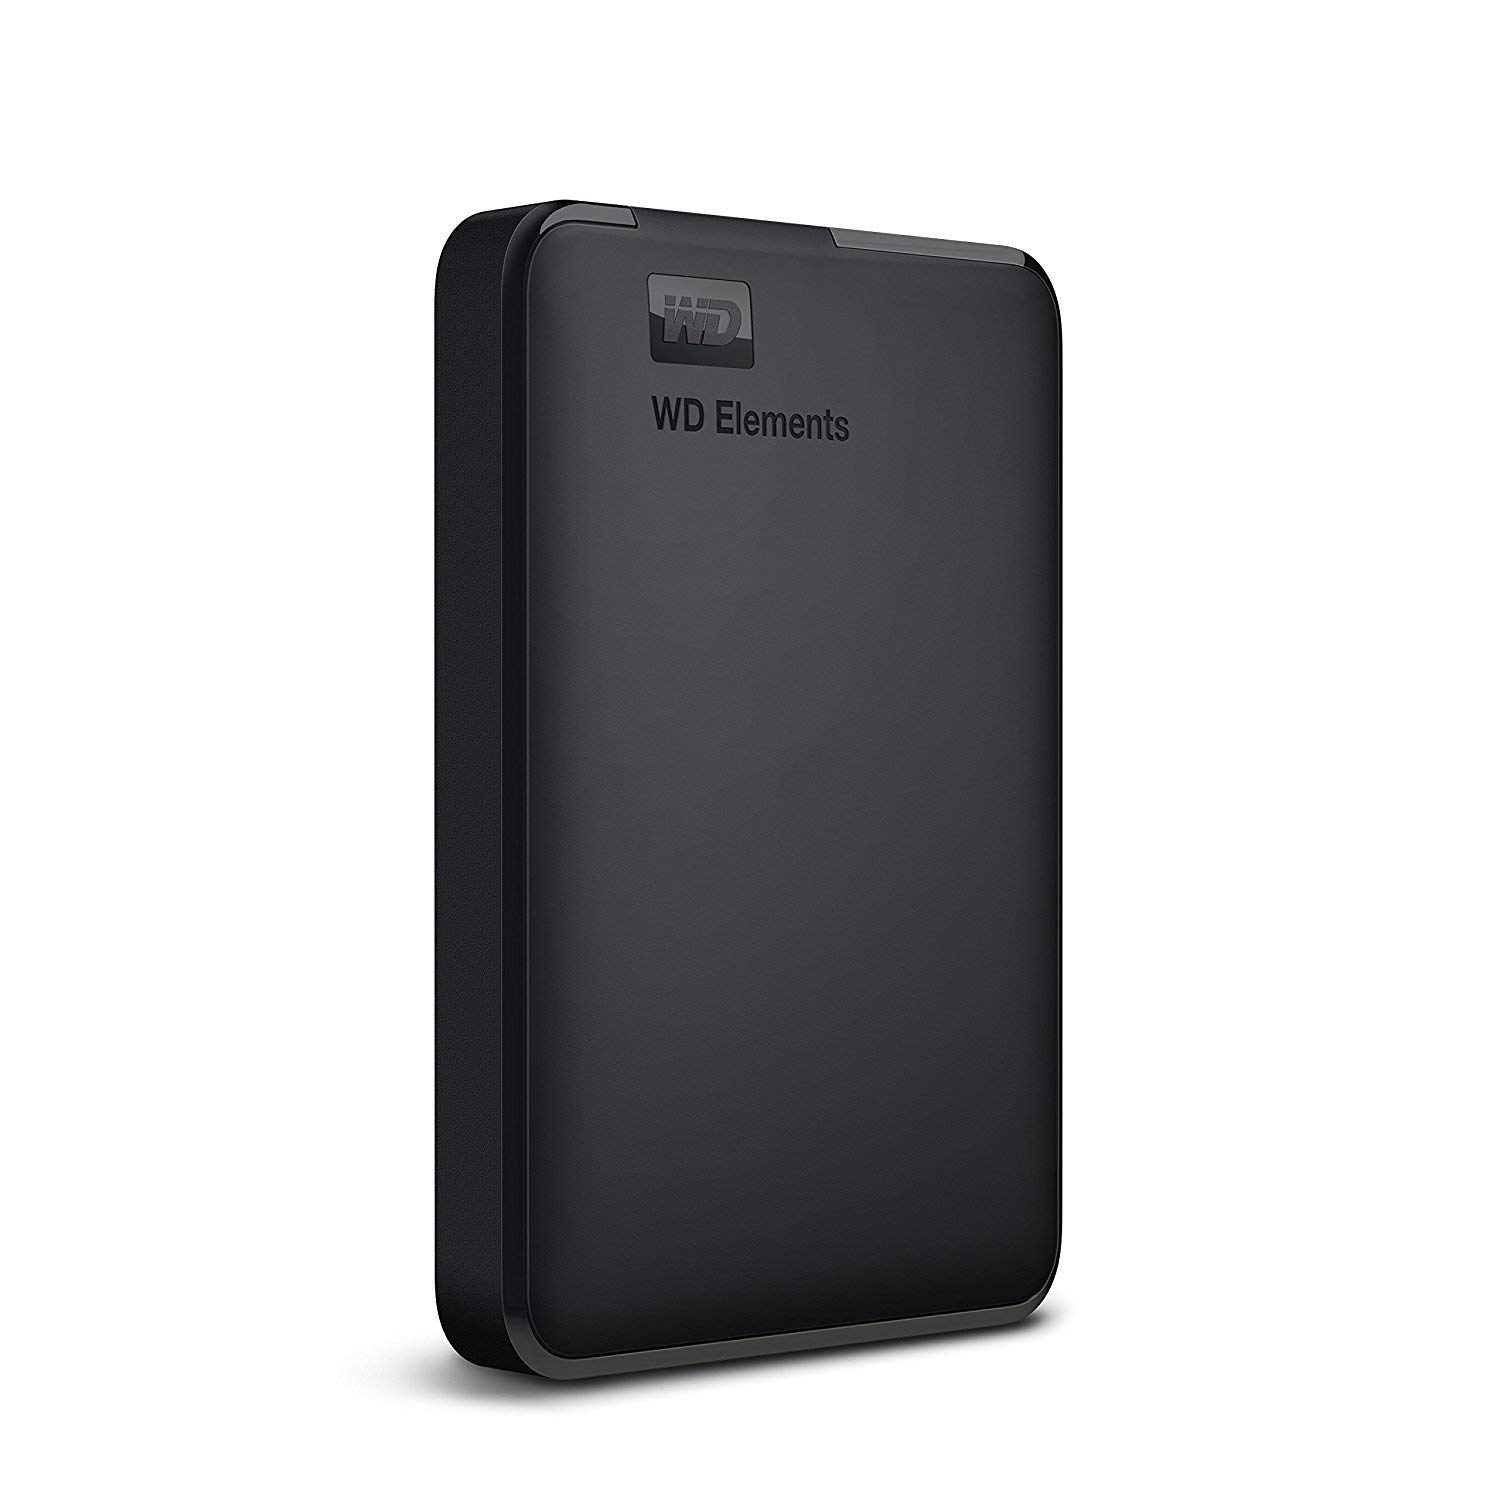 WD HDD ポータブルハードディスク 2TB WD Elements Portable WDBU6Y0020BBK-WESN USB3.0/2年保証